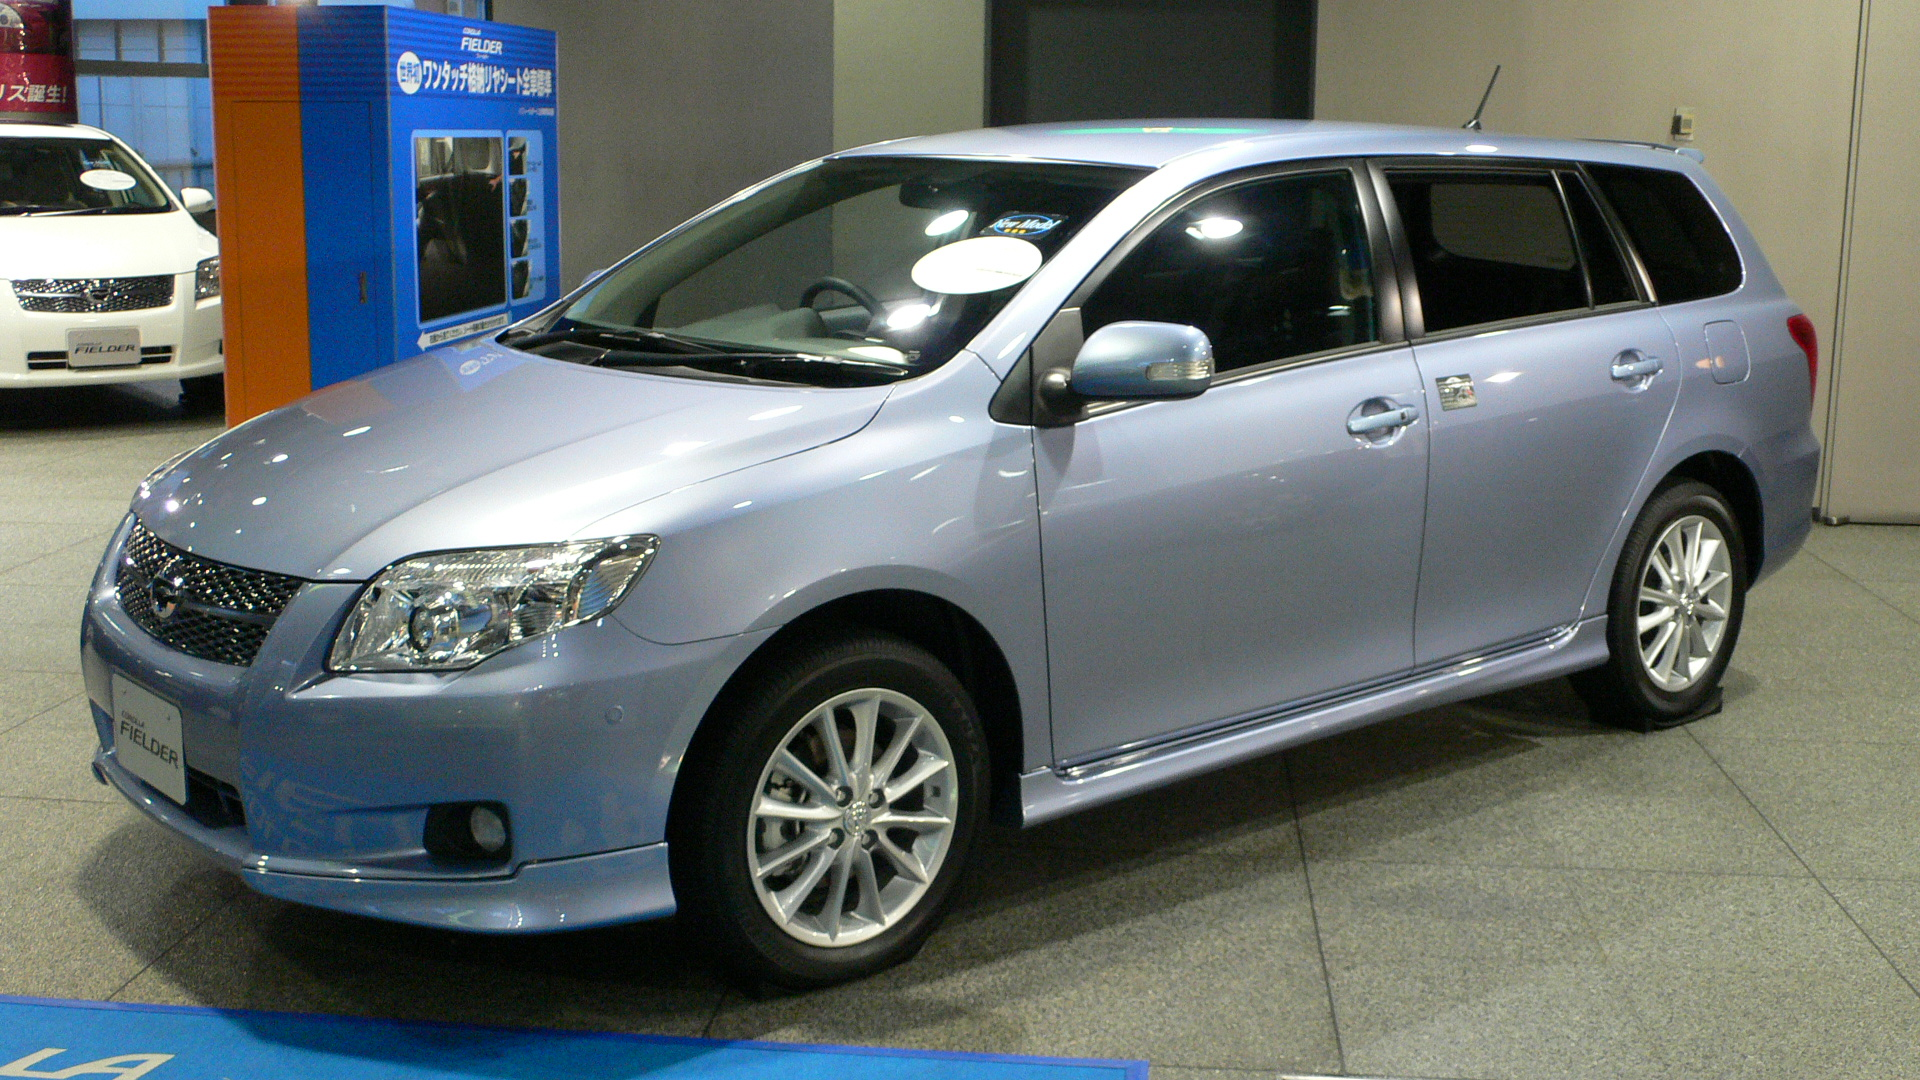 Toyota corolla axio 2011 photo - 2